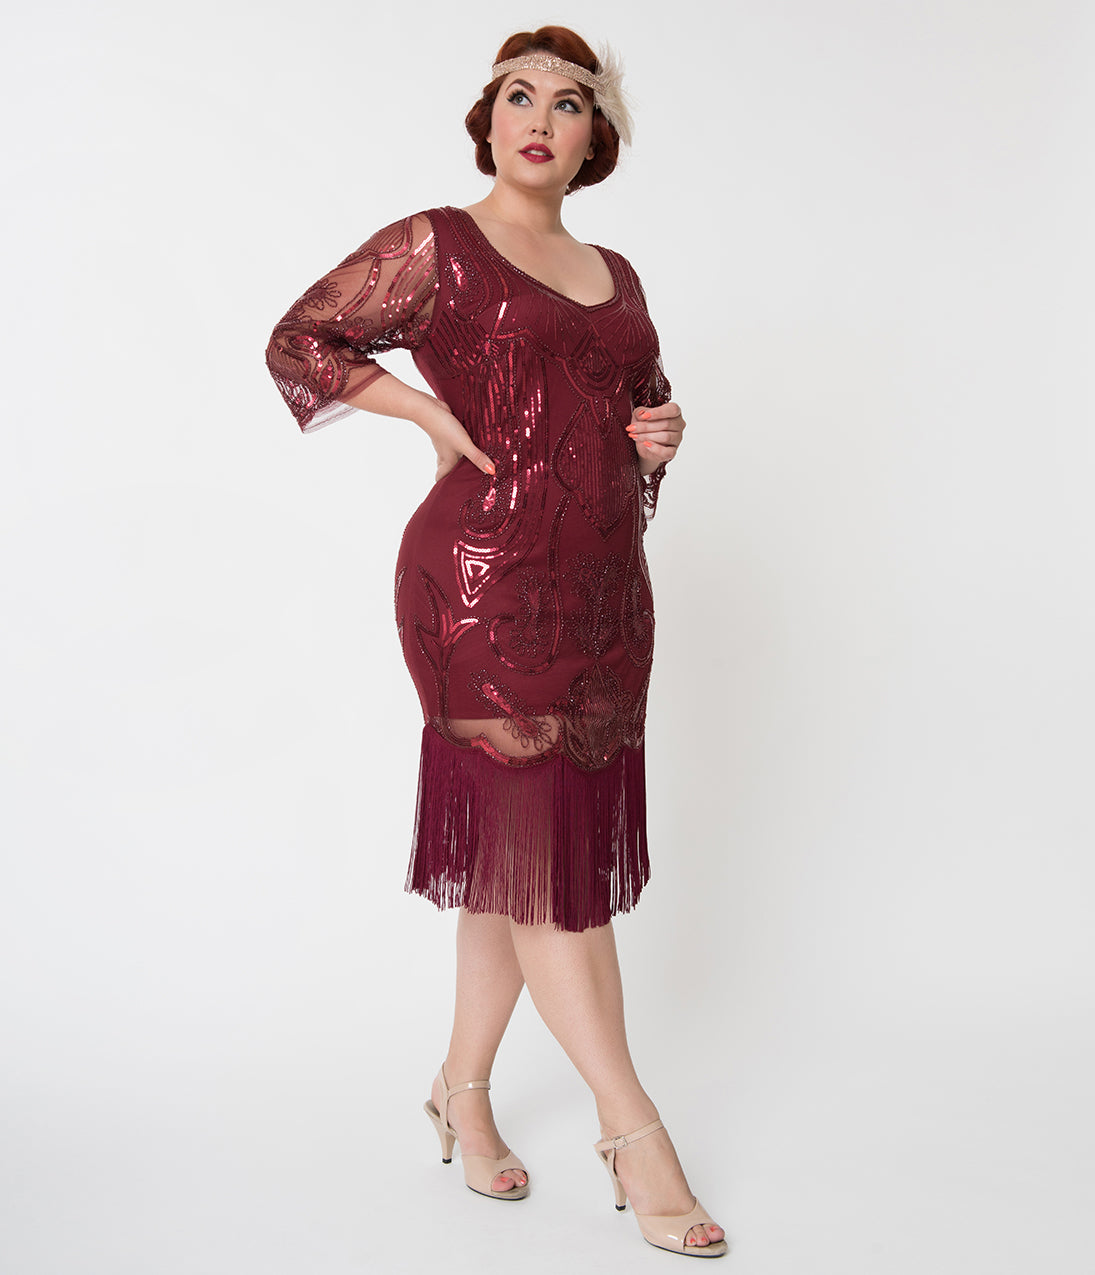 1920s Evening Gowns by Year Unique Vintage Plus Size Burgundy Red Sequin Margaux Sleeved Fringe Flapper Dress $50.00 AT vintagedancer.com